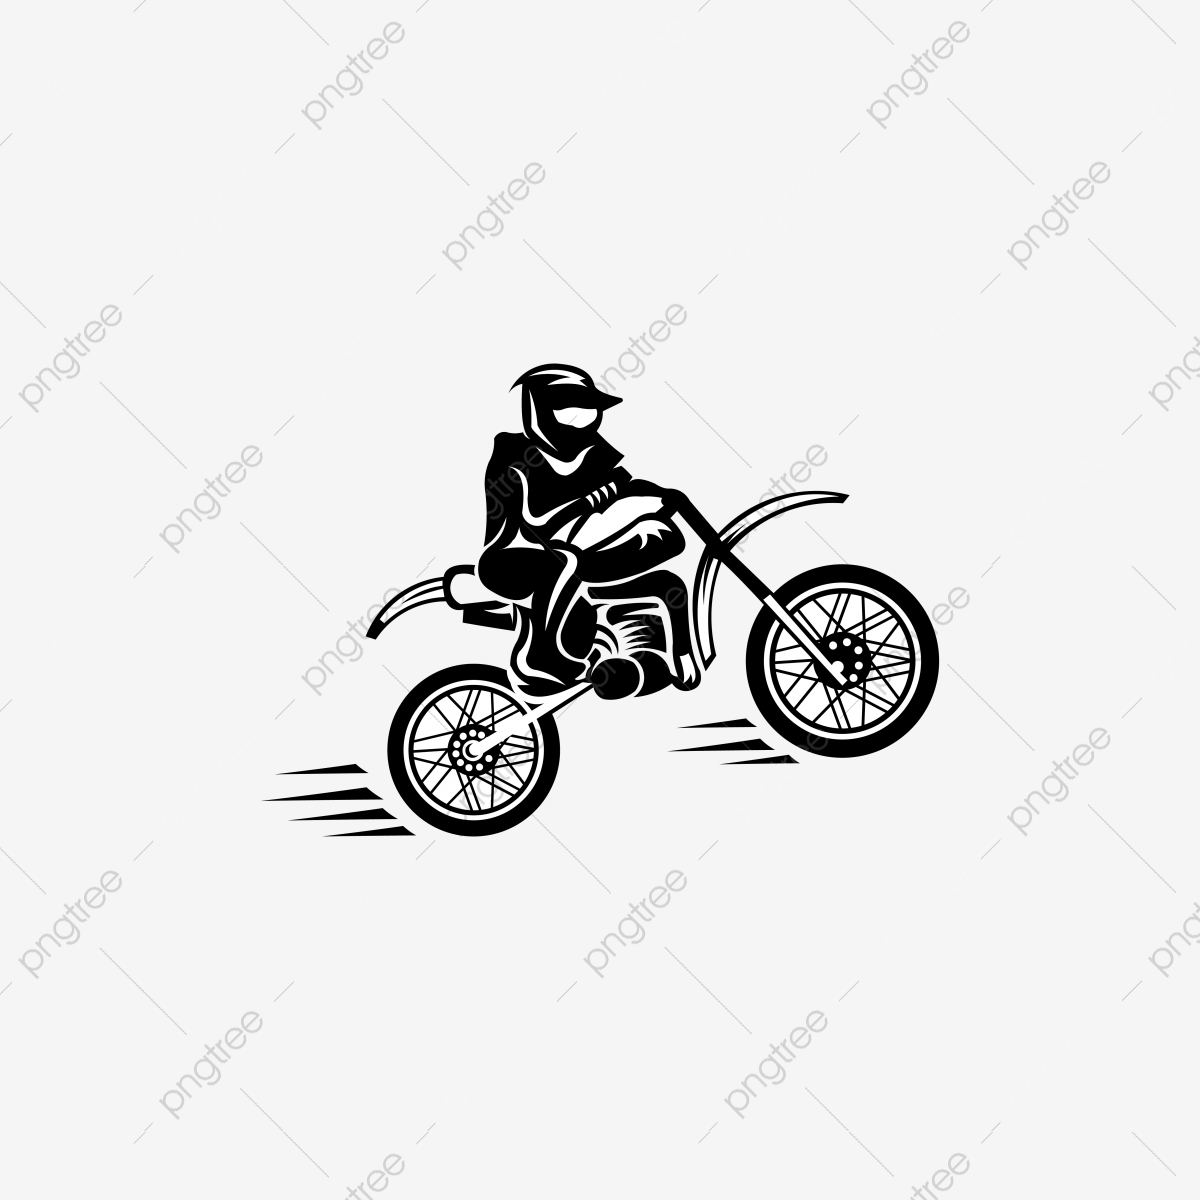 Motocross Rider And Motorcycle Template Download On Pngtree